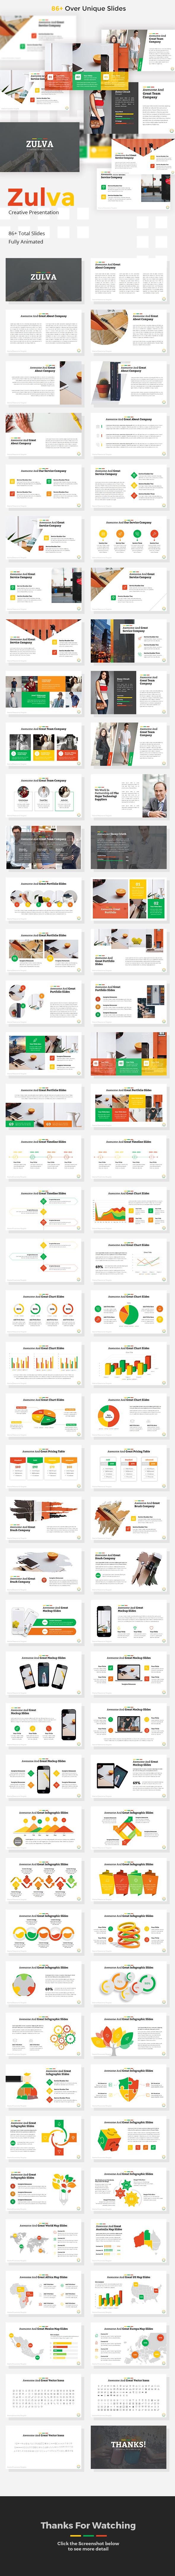 Zulva - Creative Google Slides Template - Google Slides Presentation Templates